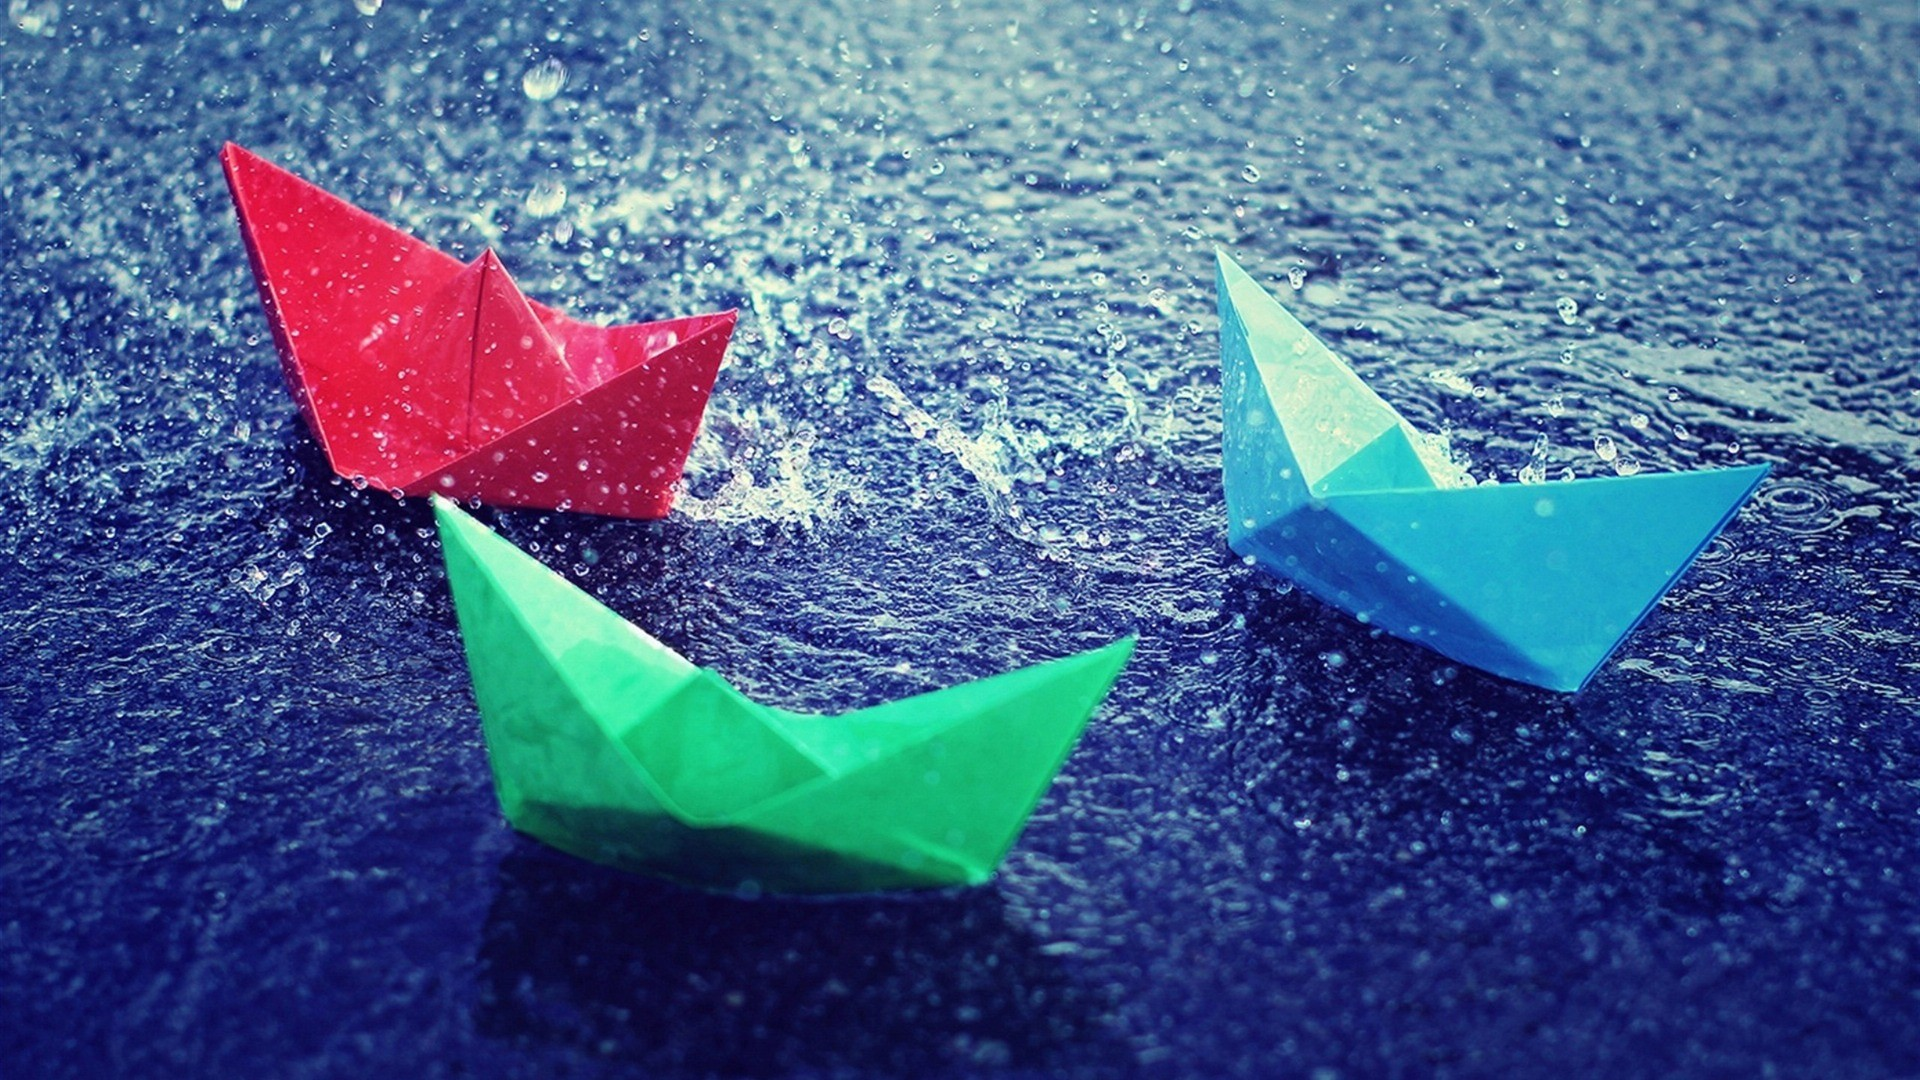 Res: 1920x1080, Rain Drops Wallpapers Images Osjourno Raindrops Wallpapers For Your Desktop  SmashingApps Rain Drops Wallpapers Free Osjourno ...